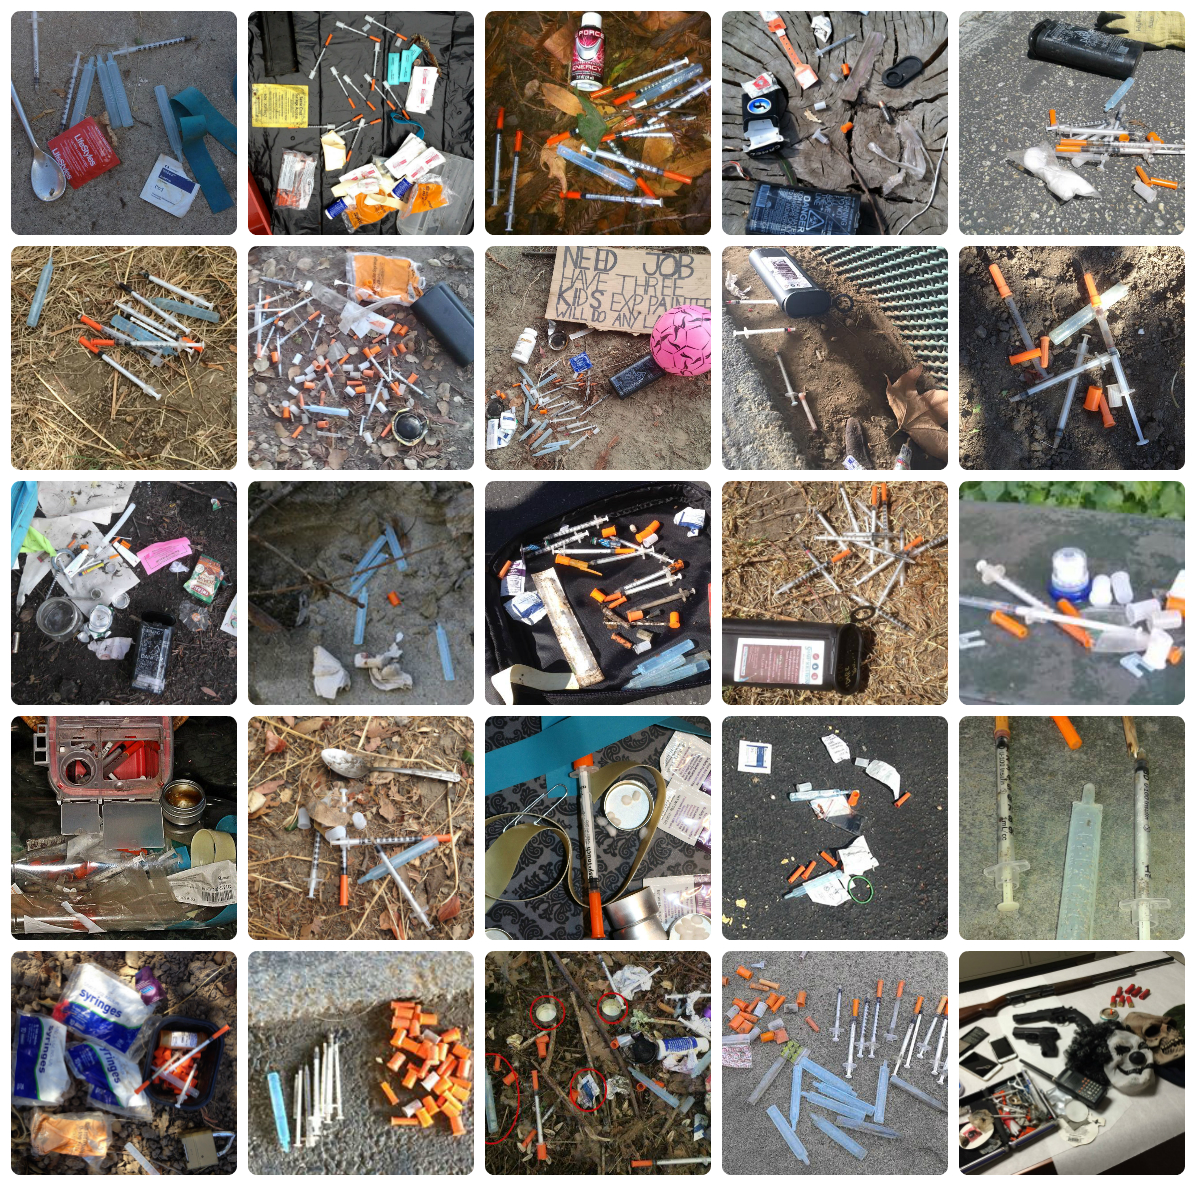 Just a few recent photos of needles along with County SSP kits found in public spaces